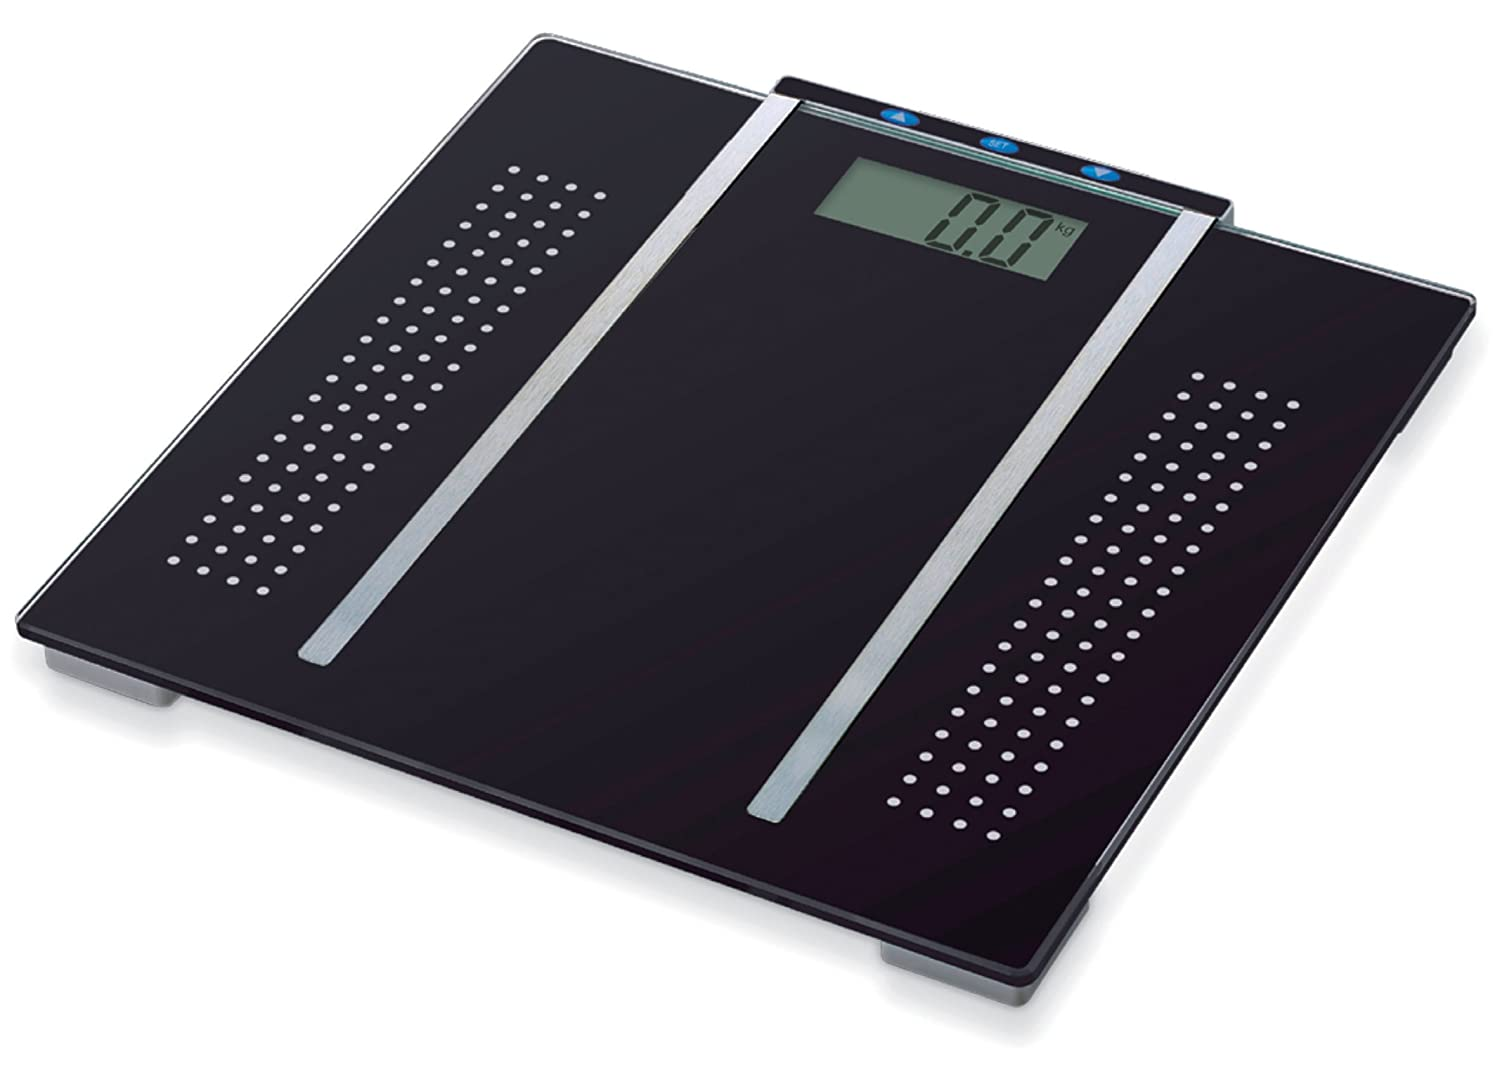 Sentik 28-0012 BMI Bathroom Scale have tempered glass platform that firmly  to weight up to 150 kg. High precision strain gauge sensors system for  accurate ...